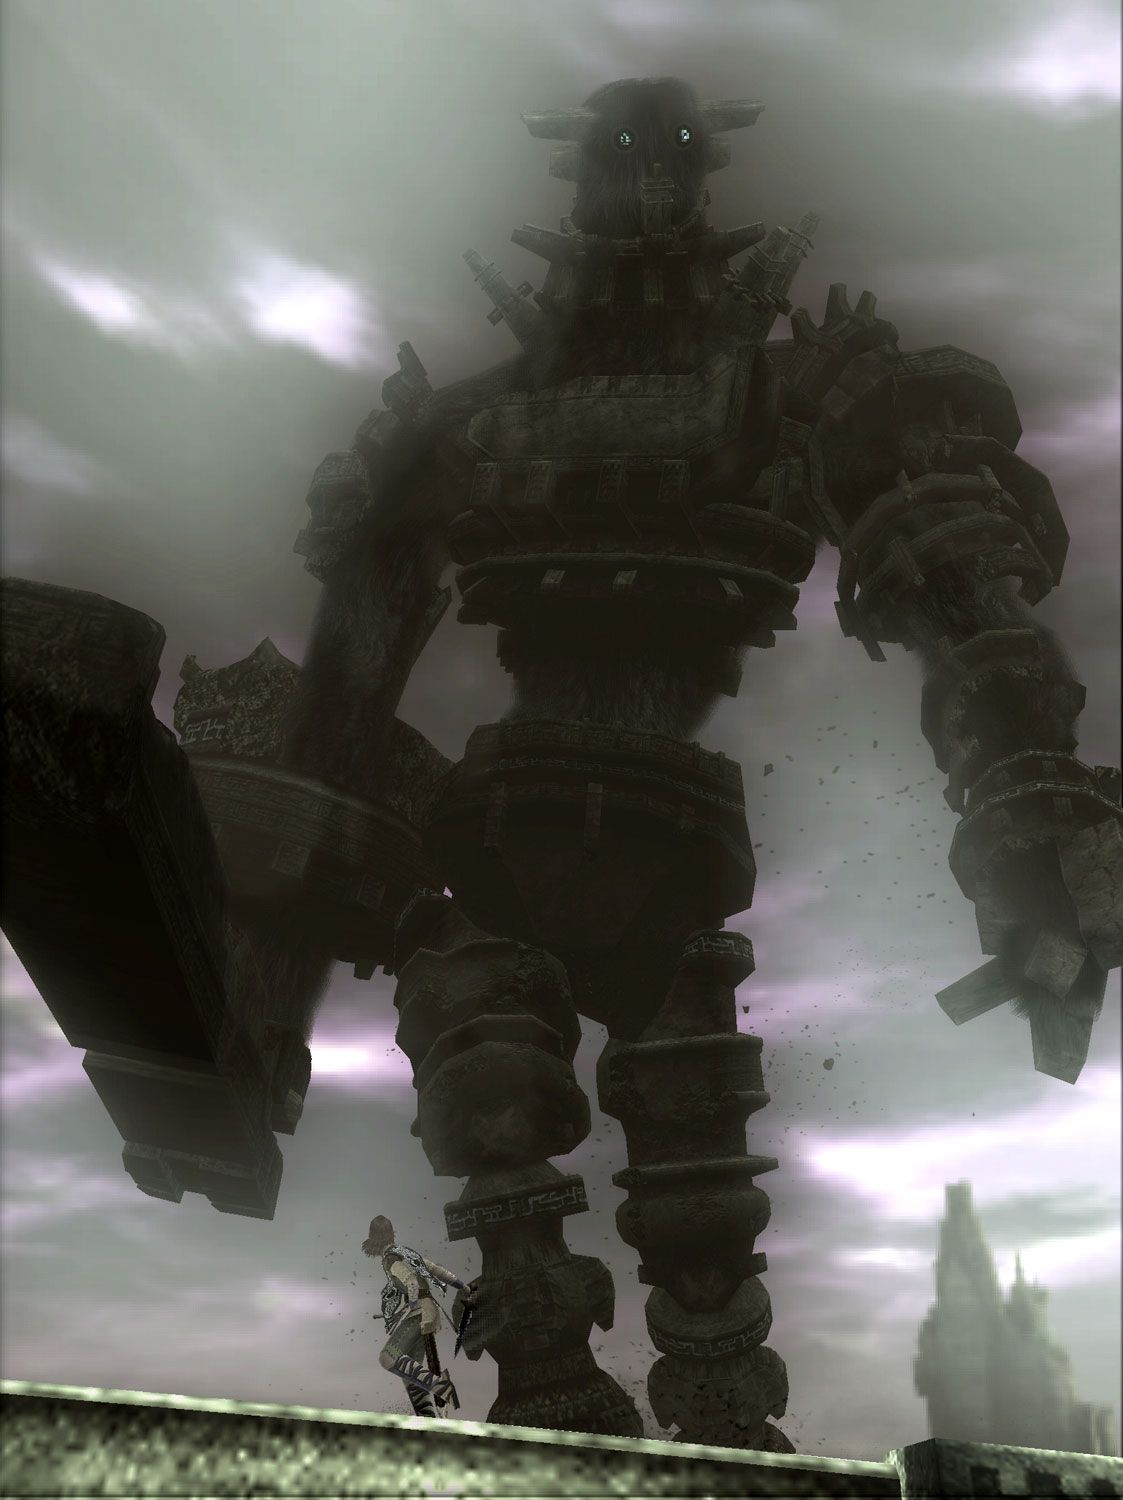 1123x1500 Shadow Of The Colossus Wallpaper and Background Image | 1123x1500 ...